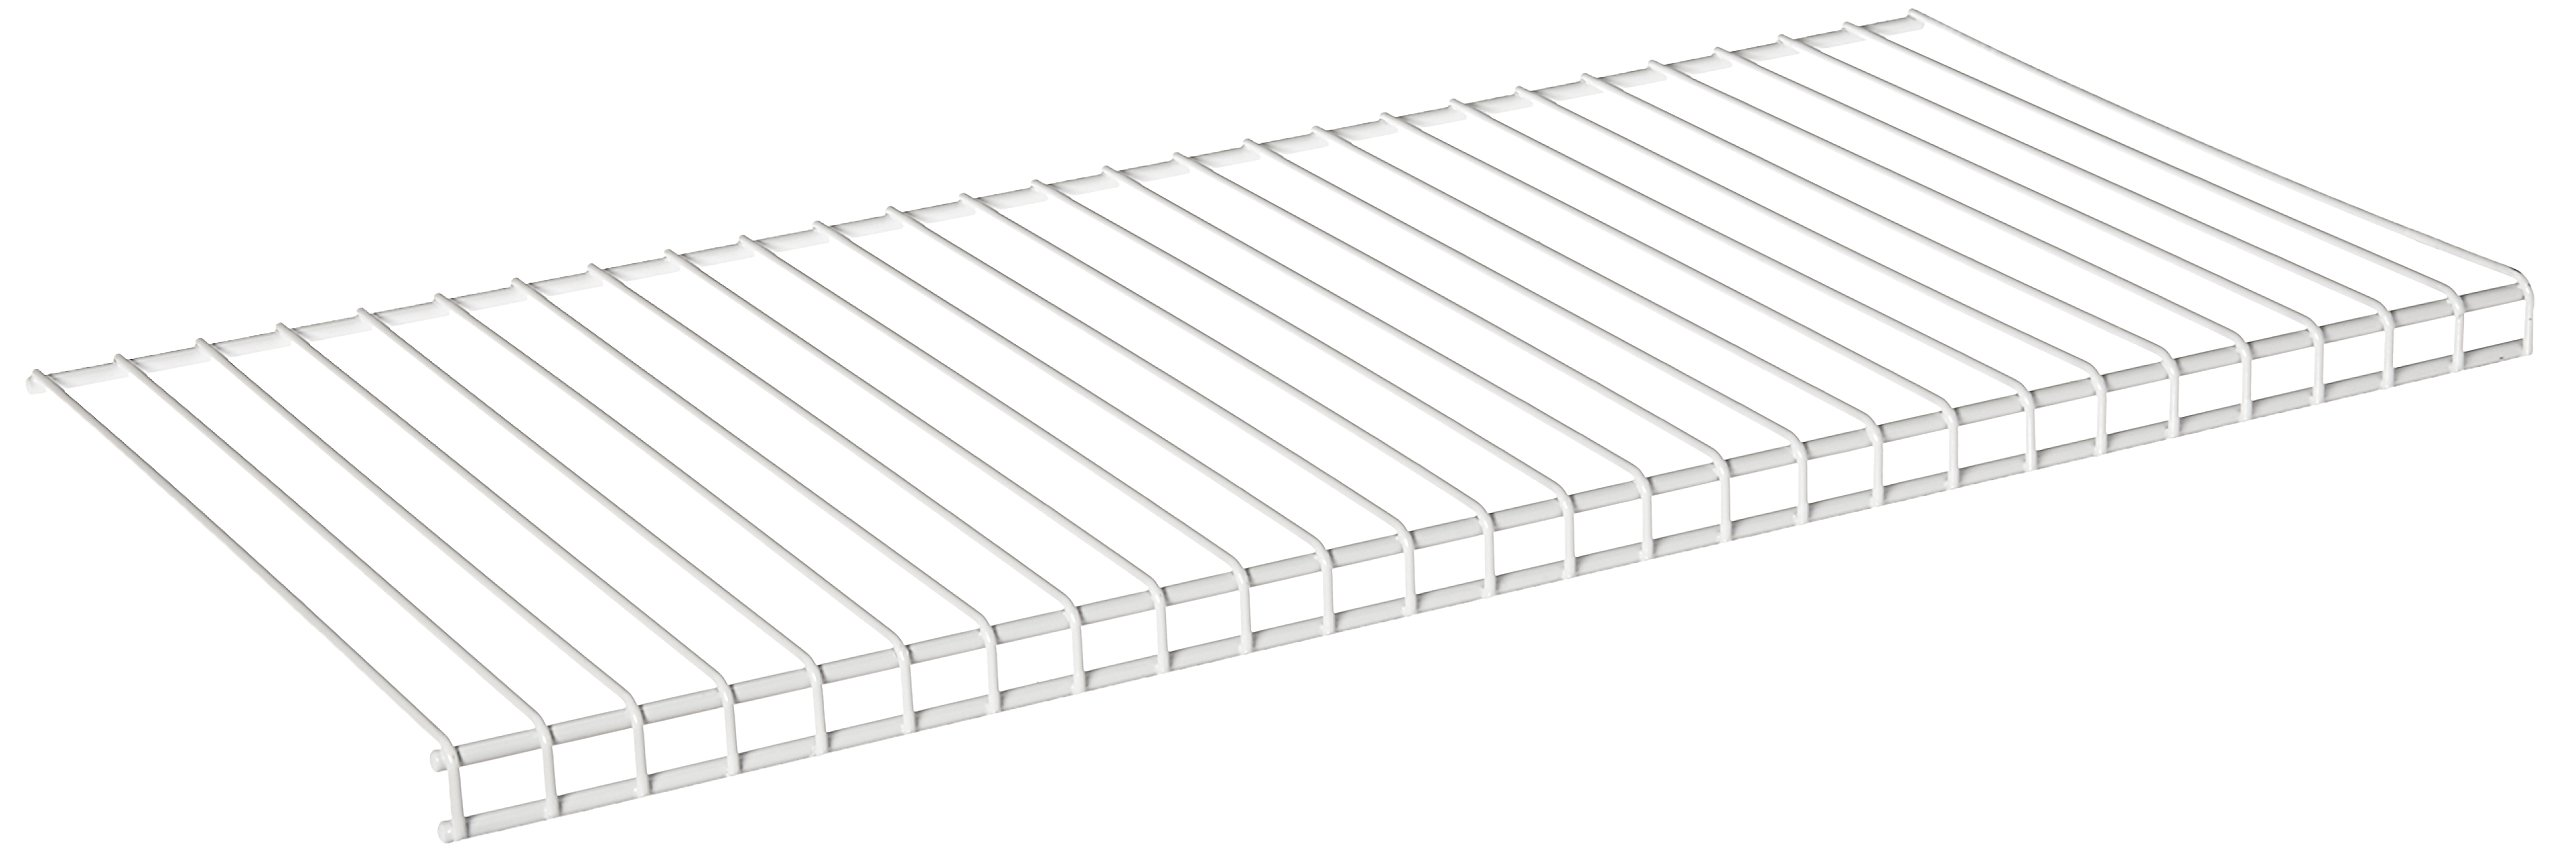 Rubbermaid FG3H9100WHT Configurations 26'' Shelving Kit - White by Rubbermaid